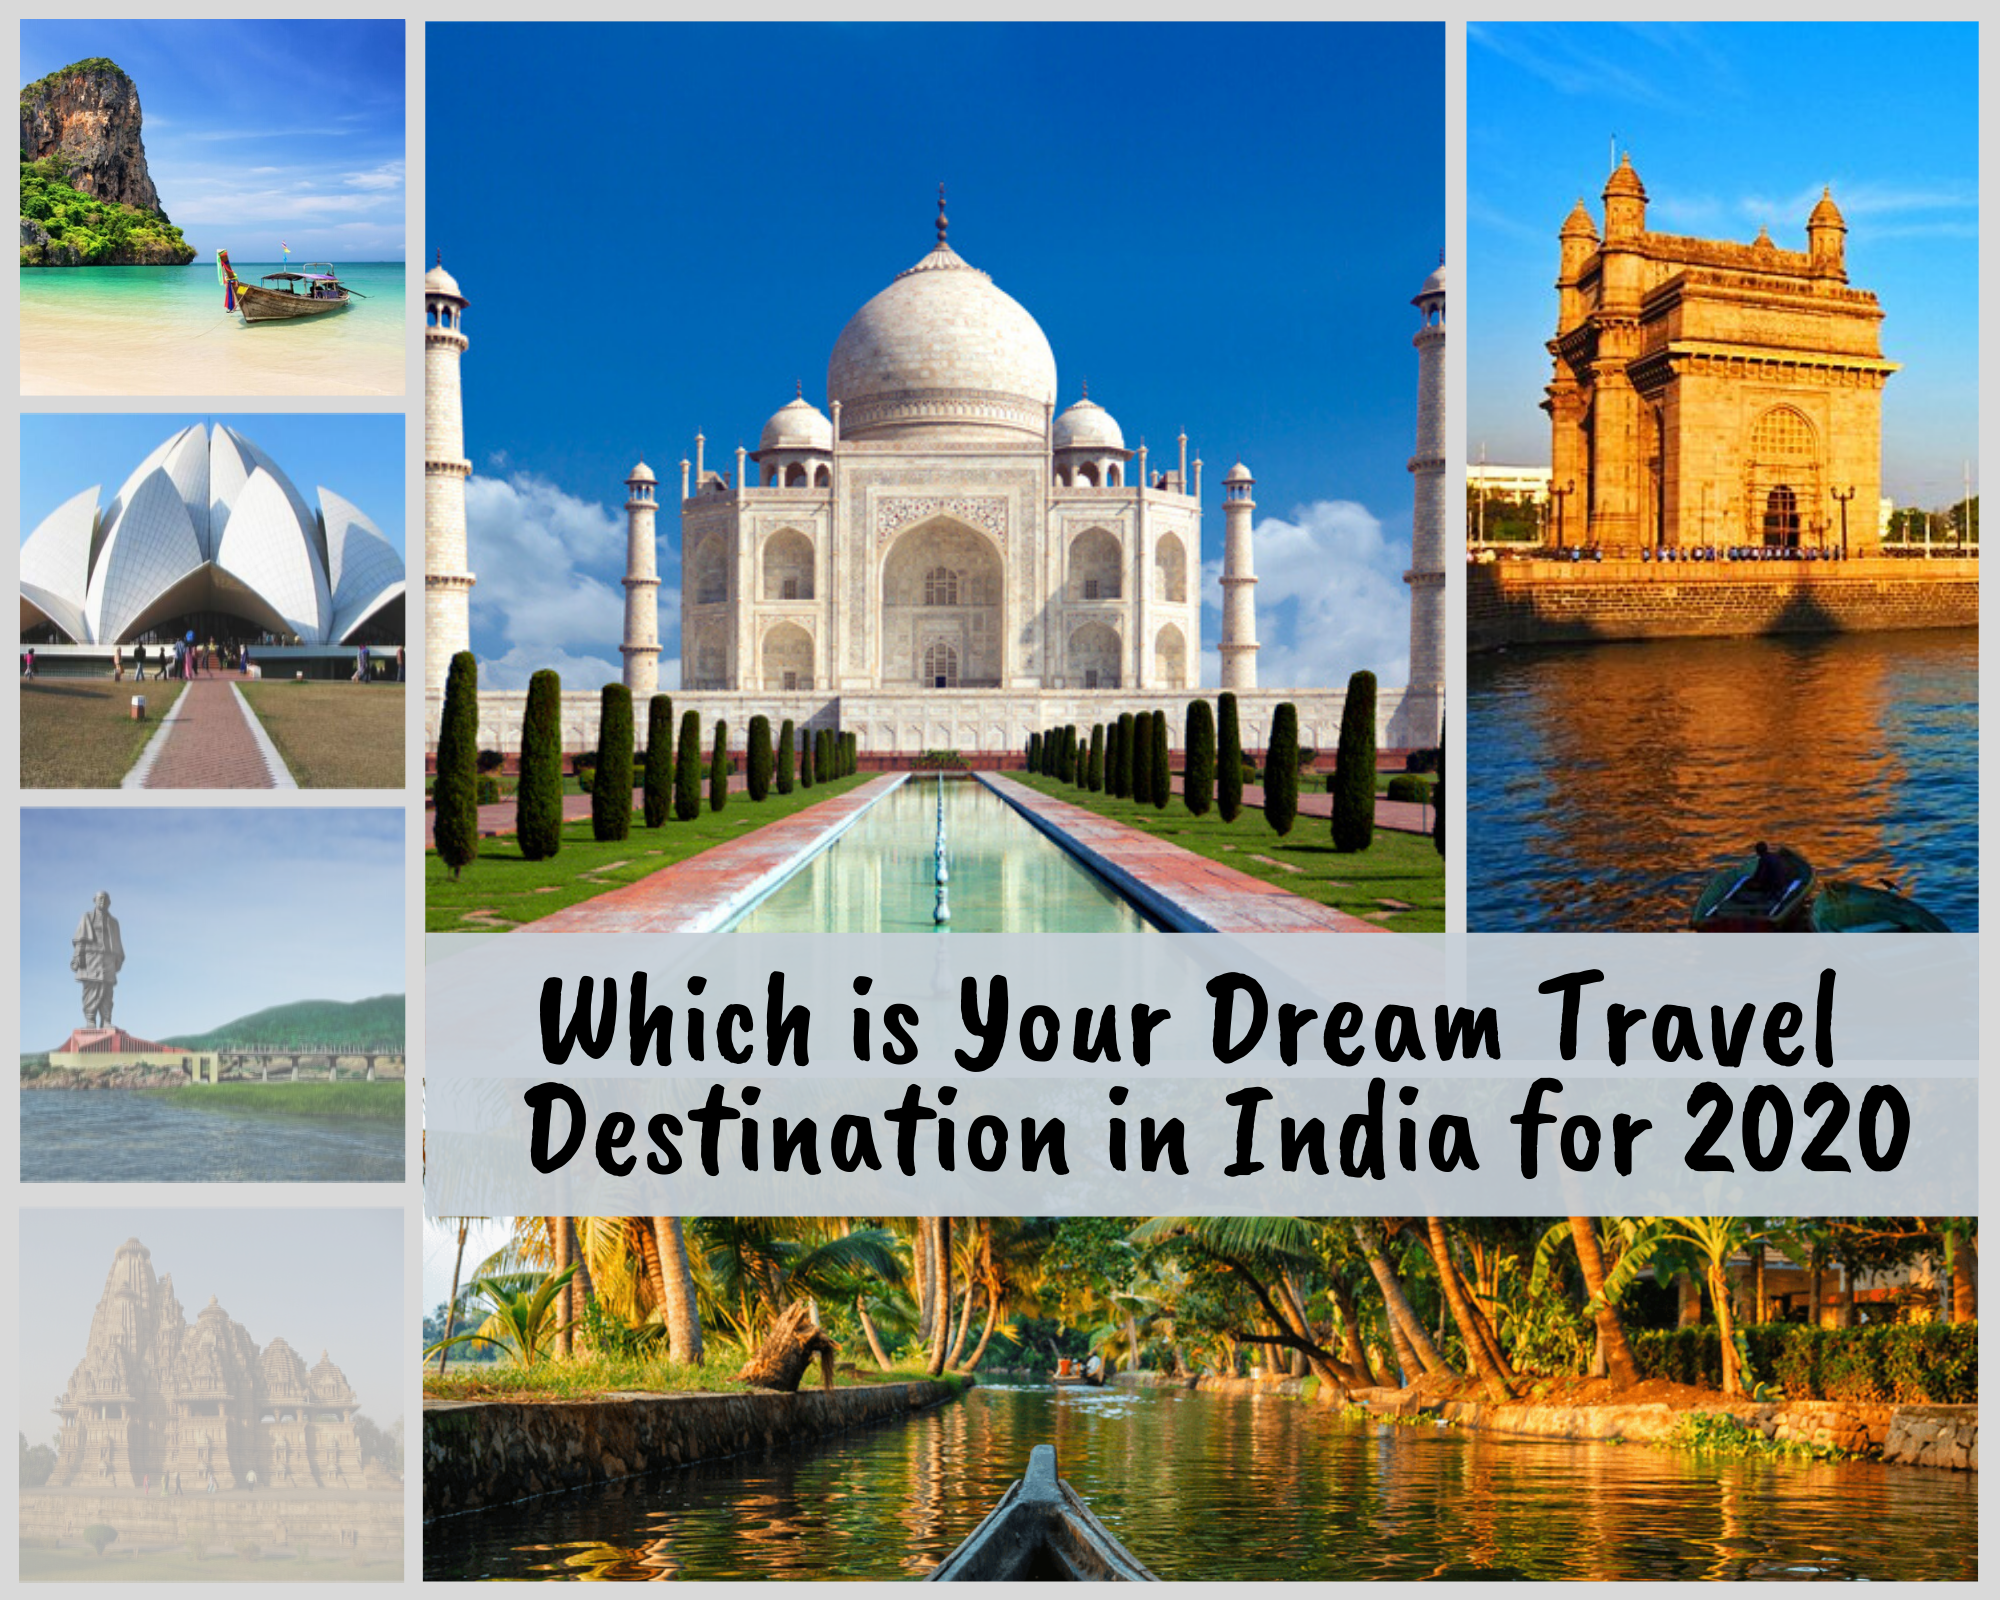 Which Place Do You Really Want to Visit in India This Year?